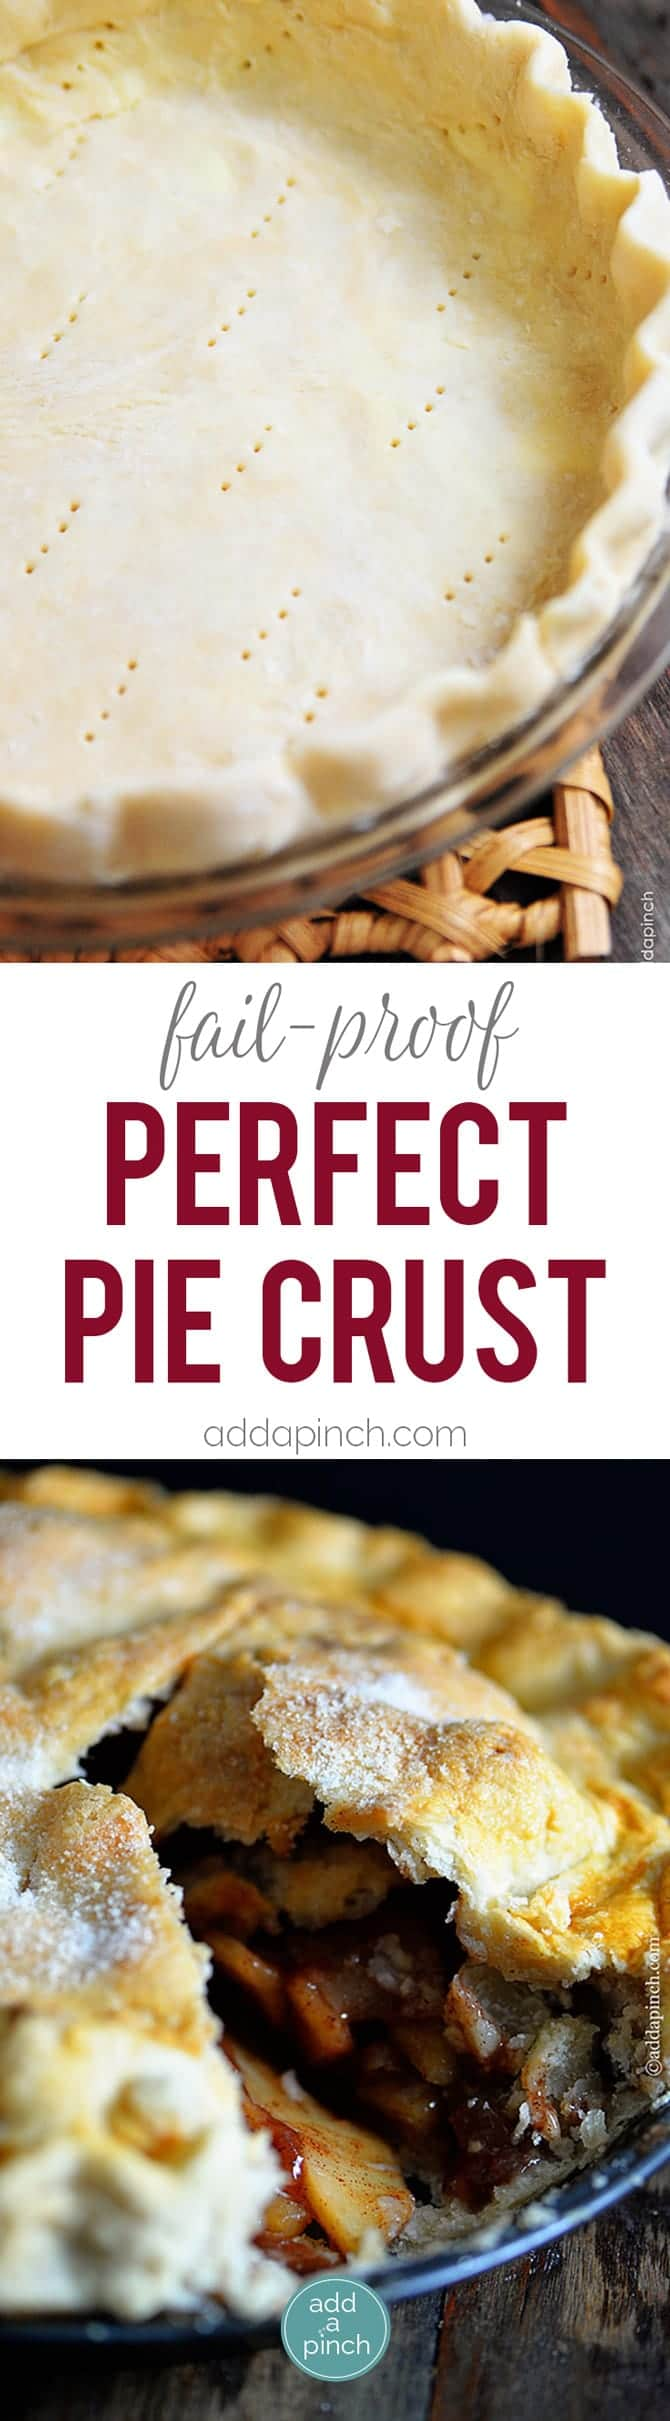 ... pies. This pie crust recipe is made by hand and makes a perfect pie